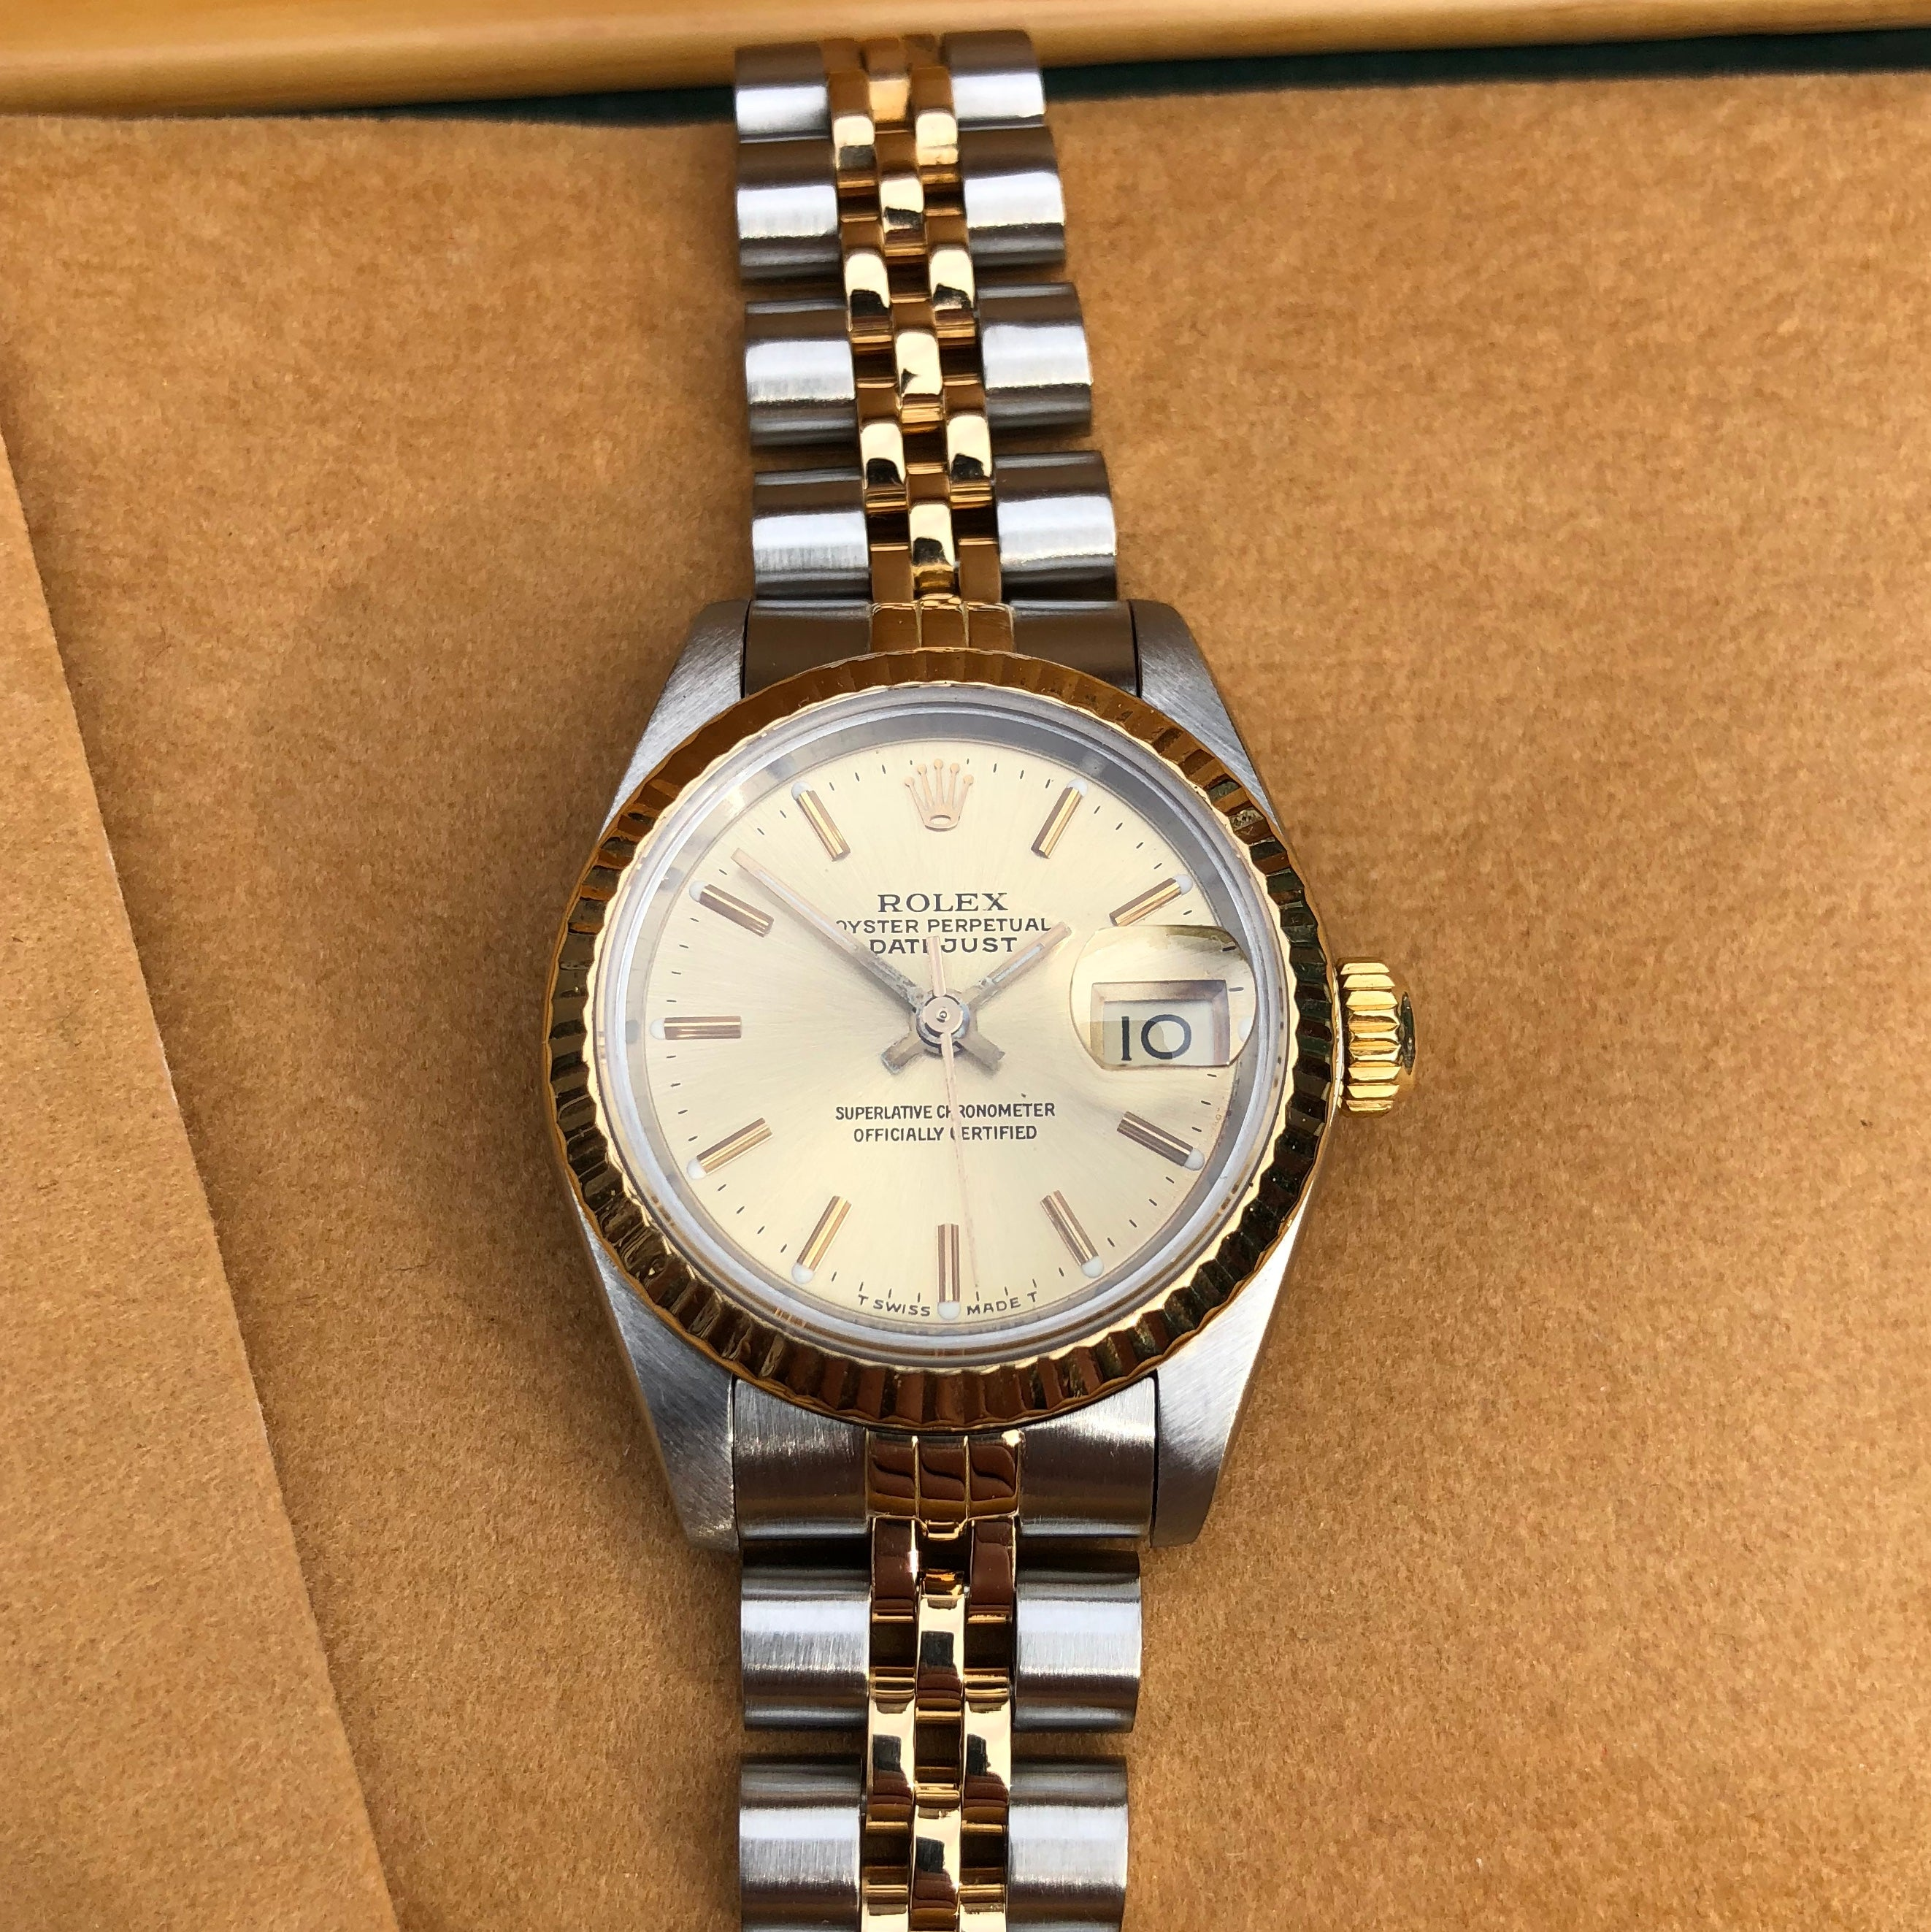 88ac5d818d9 ... Rolex Datejust 69173 Ladies Two Tone Champagne Stick Dial Steel 18K  Gold Jubilee Wristwatch ...